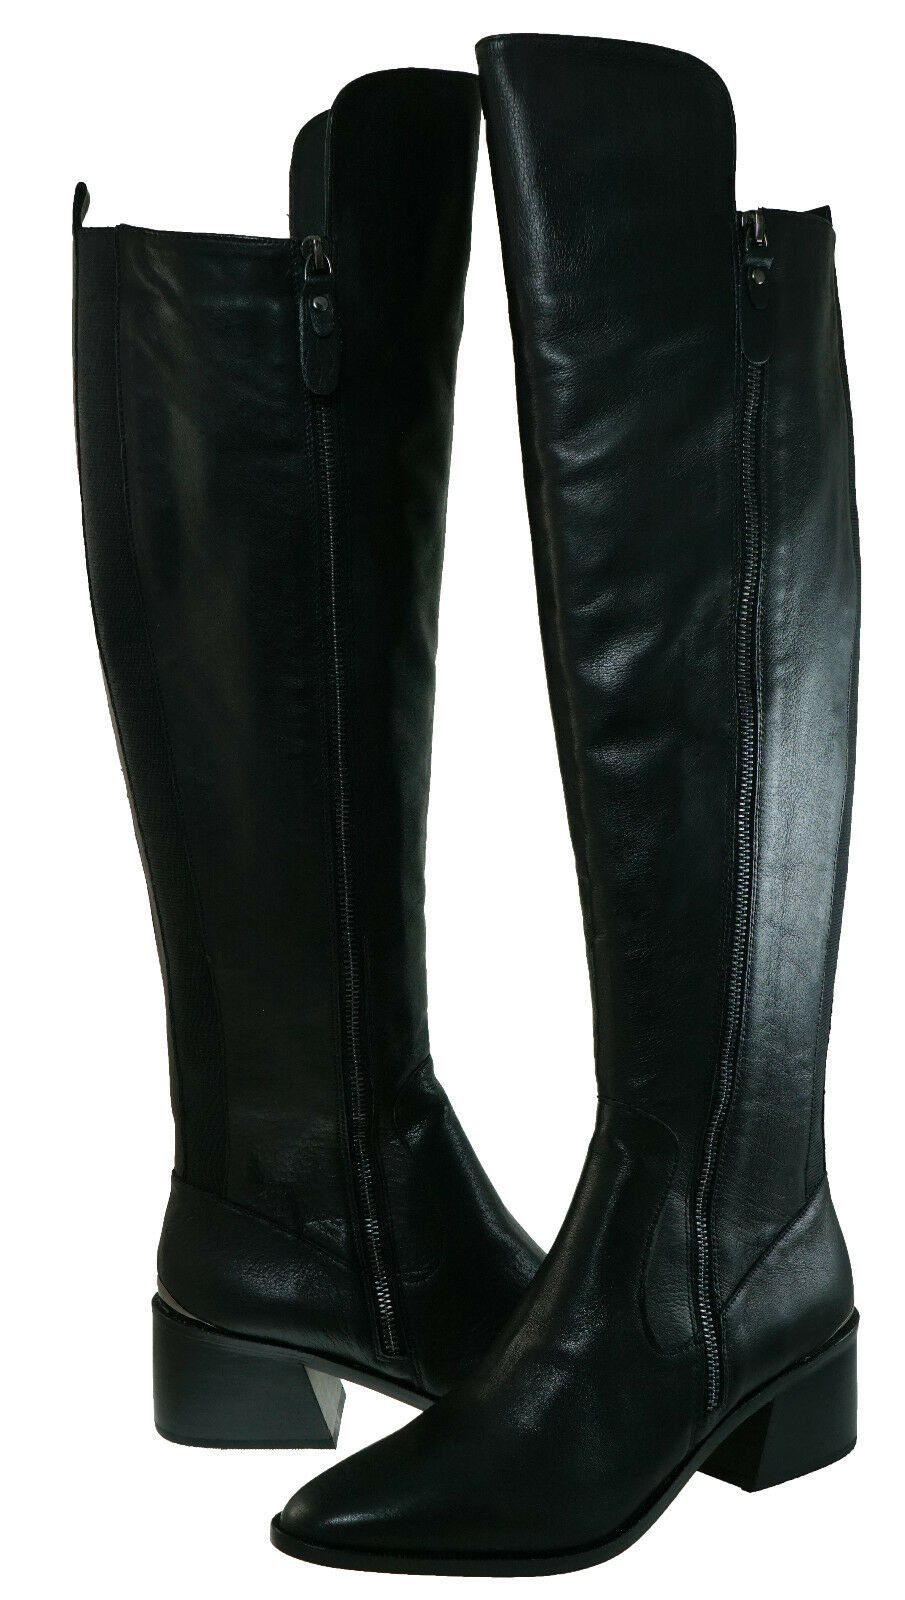 Dolce Vita Womens Cinco Pull On Double The Side zipper Tall Over The Double Knee Boots 516339